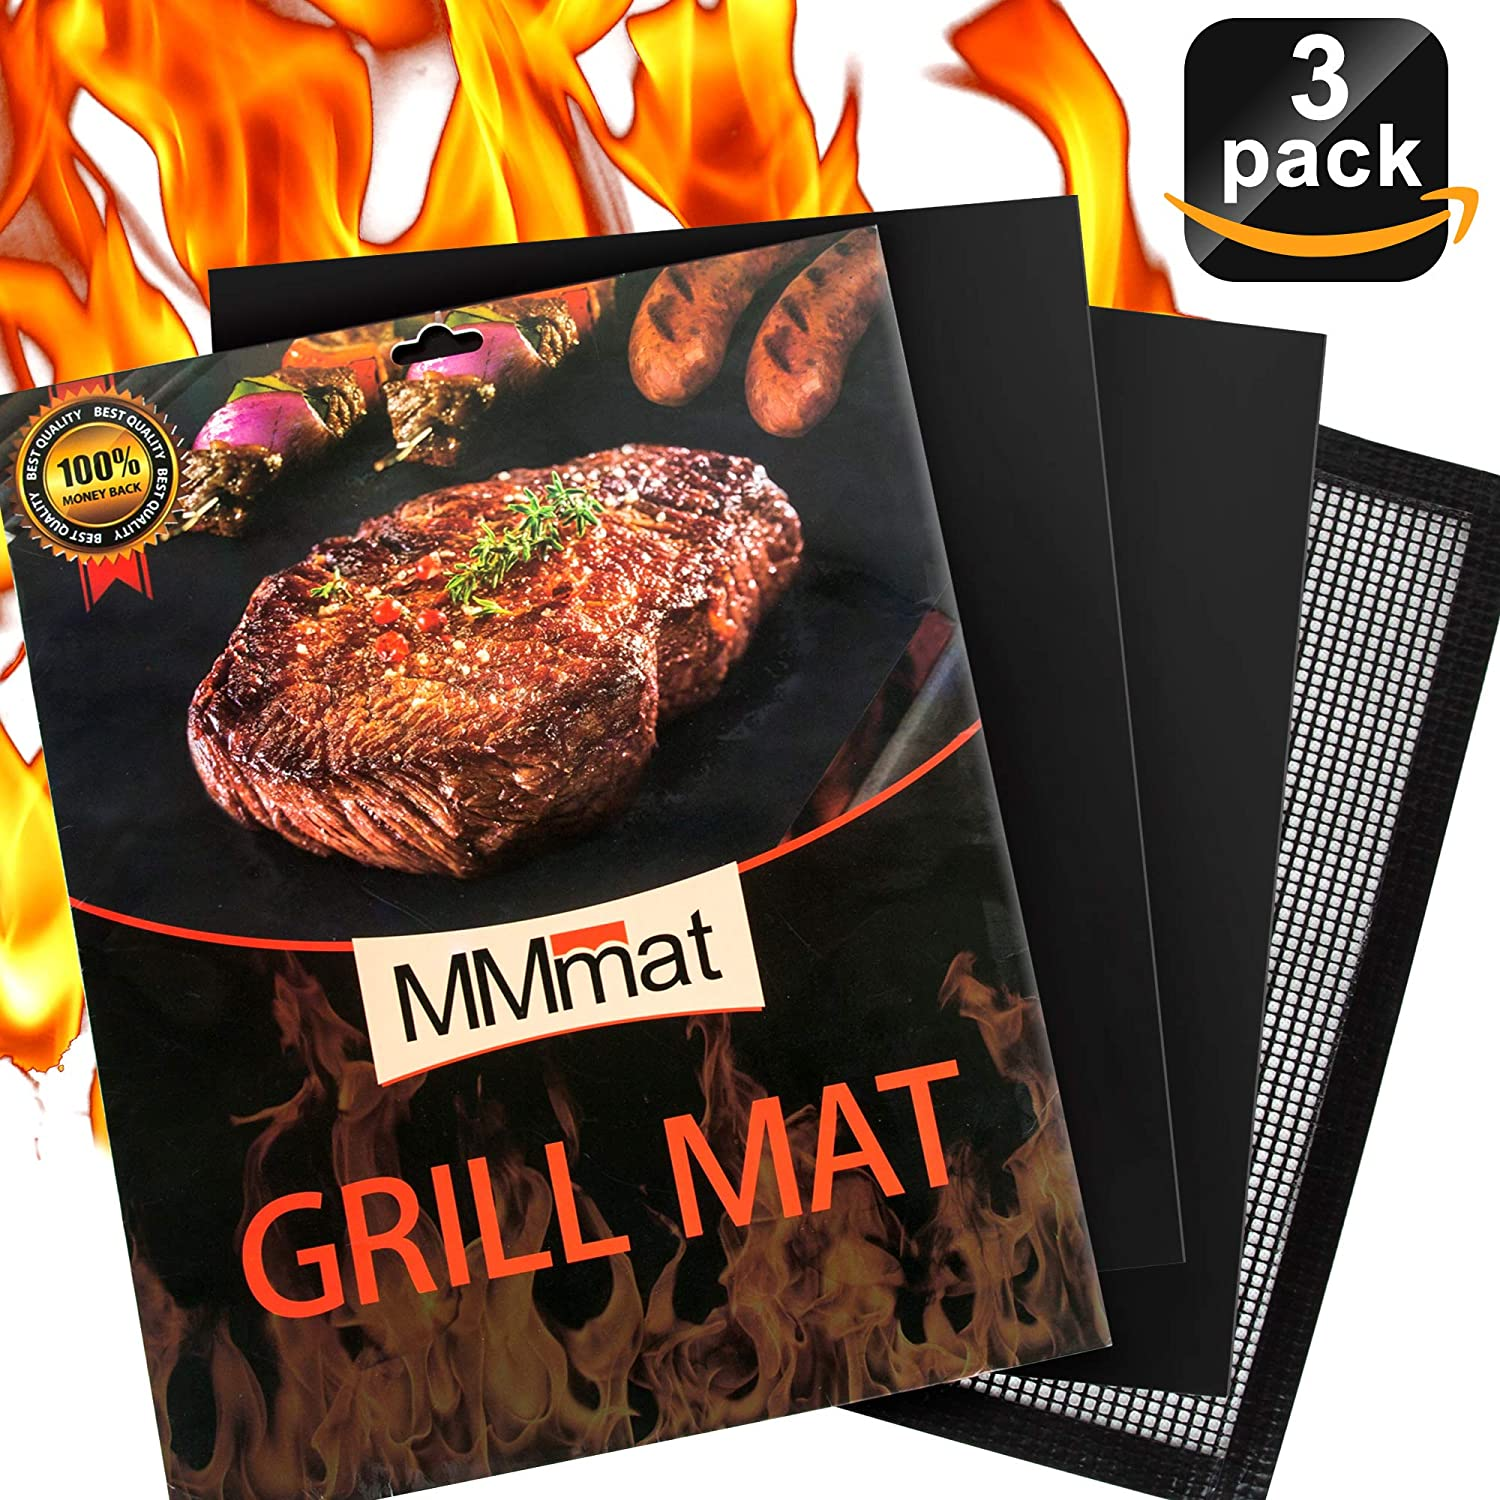 MMMAT Grill Mat - Set of 3 Heavy Duty BBQ Grill Mats - Non Stick, Reusable, Easy to Clean